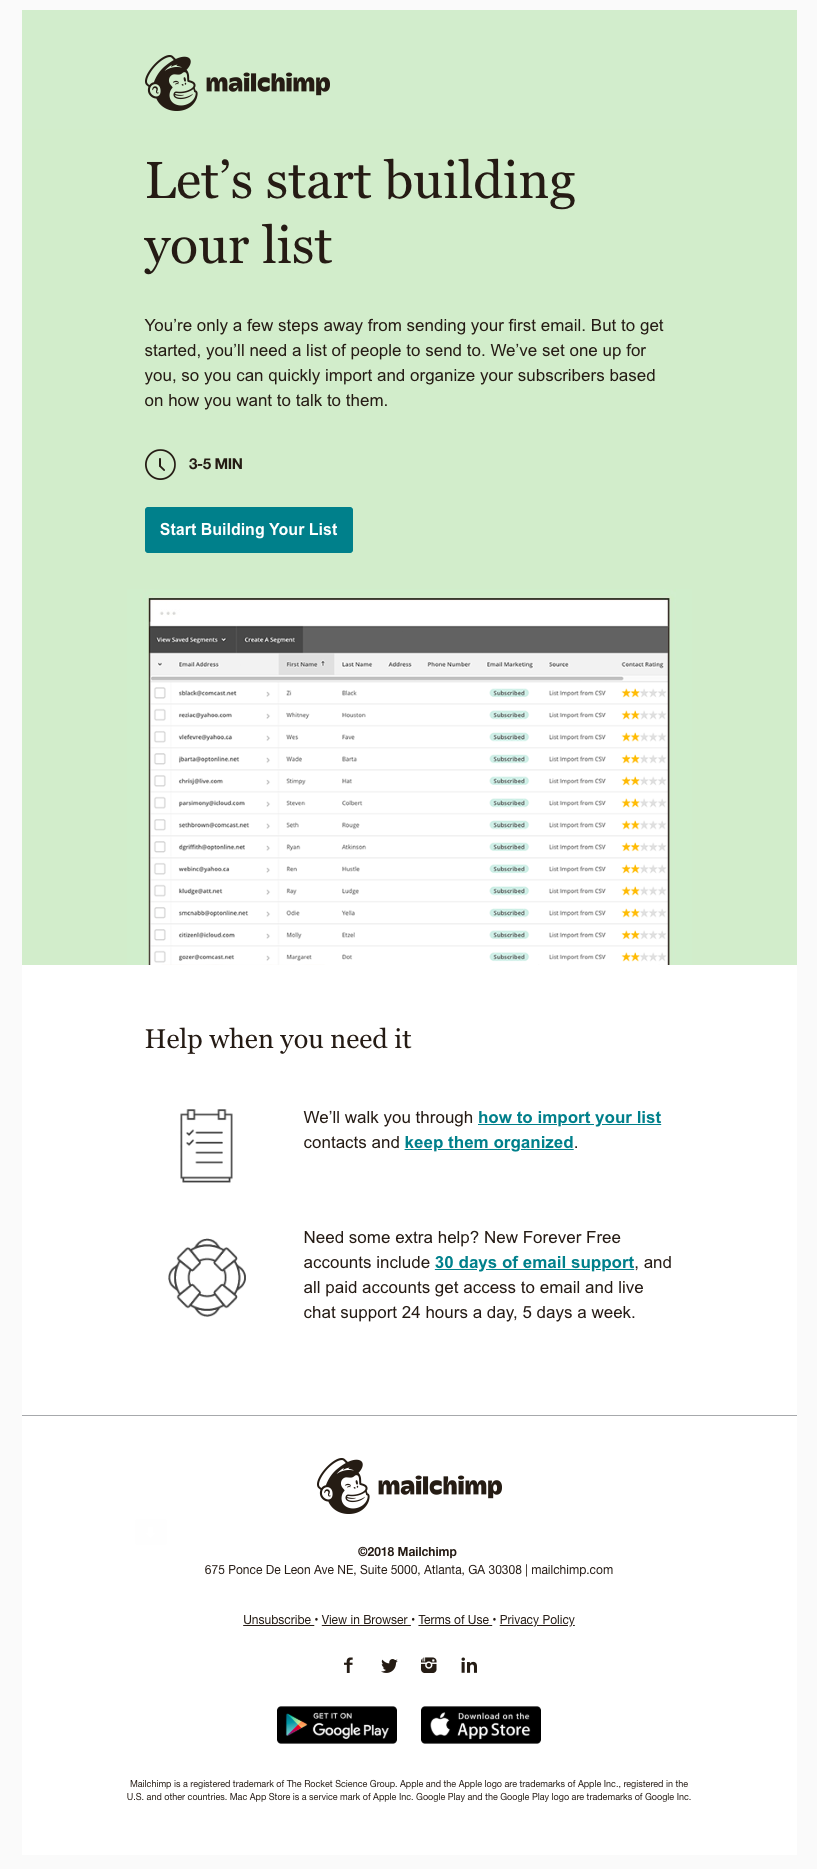 How Mailchimp uses email marketing